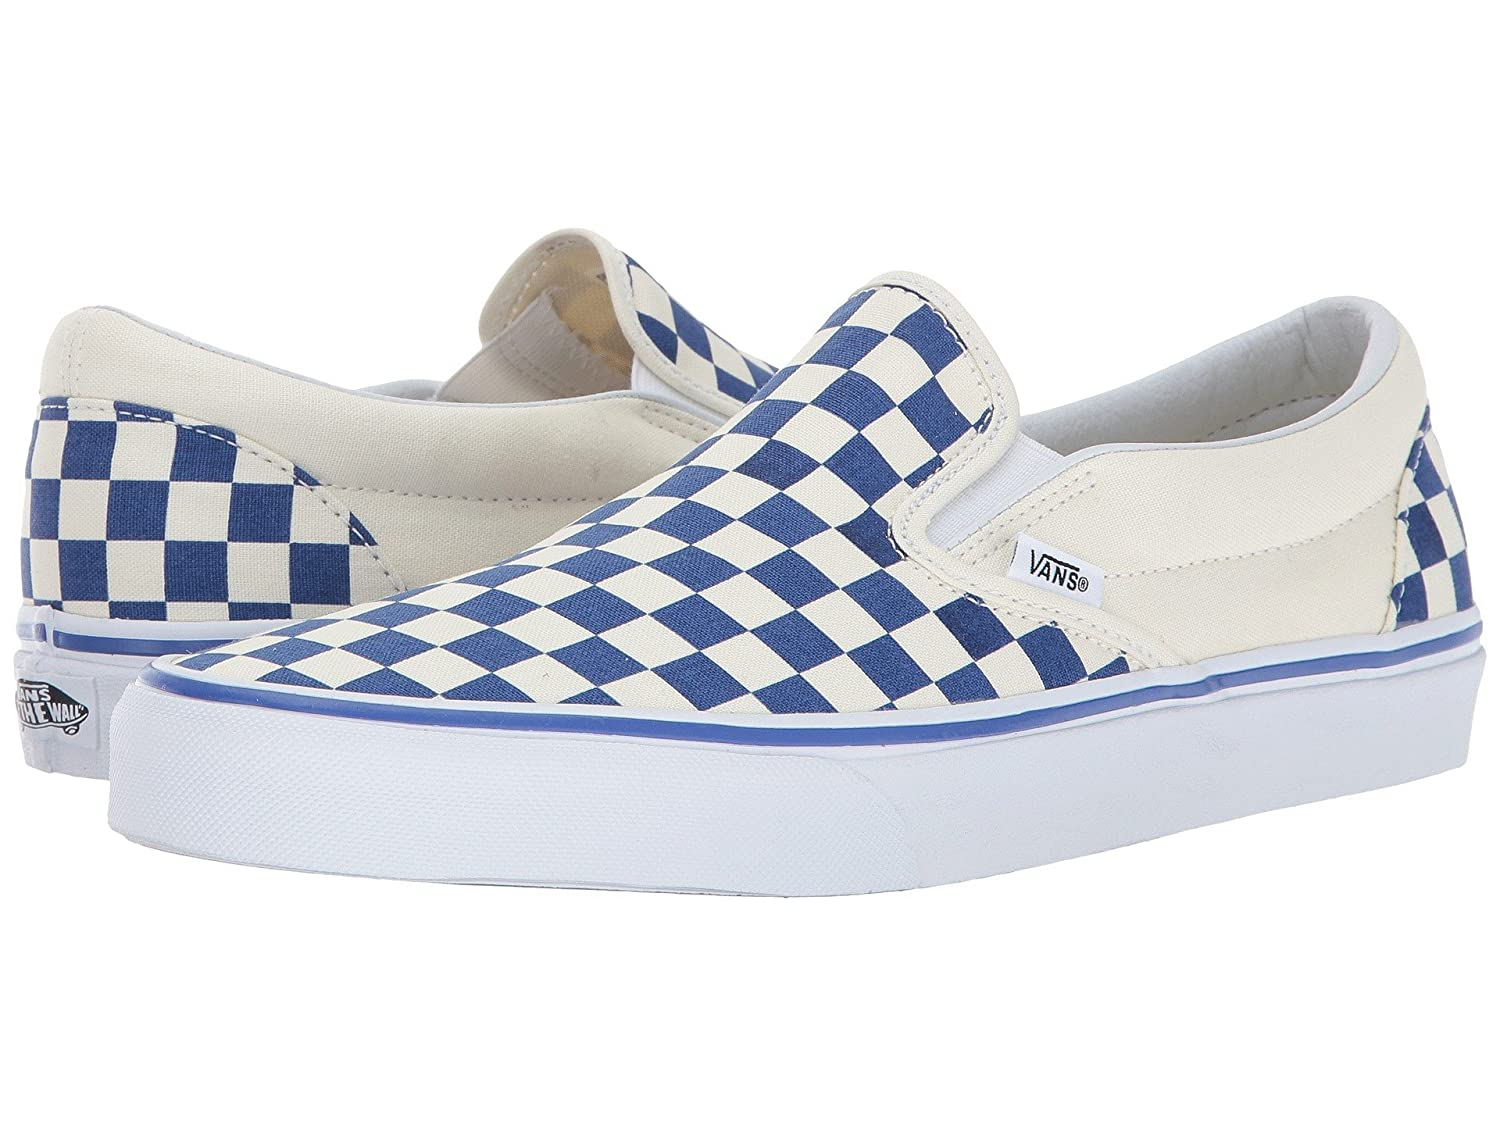 [バンズ] スニーカー Women's AUTHENTIC (Pig Suede) VN0A38EMU5O レディース B07814WL6T ( Primary Checker) True Blue / White 14.5 B(M) US Women / 13 D(M) US Men 14.5 B(M) US Women / 13 D(M) US Men|( Primary Checker) True Blue / White